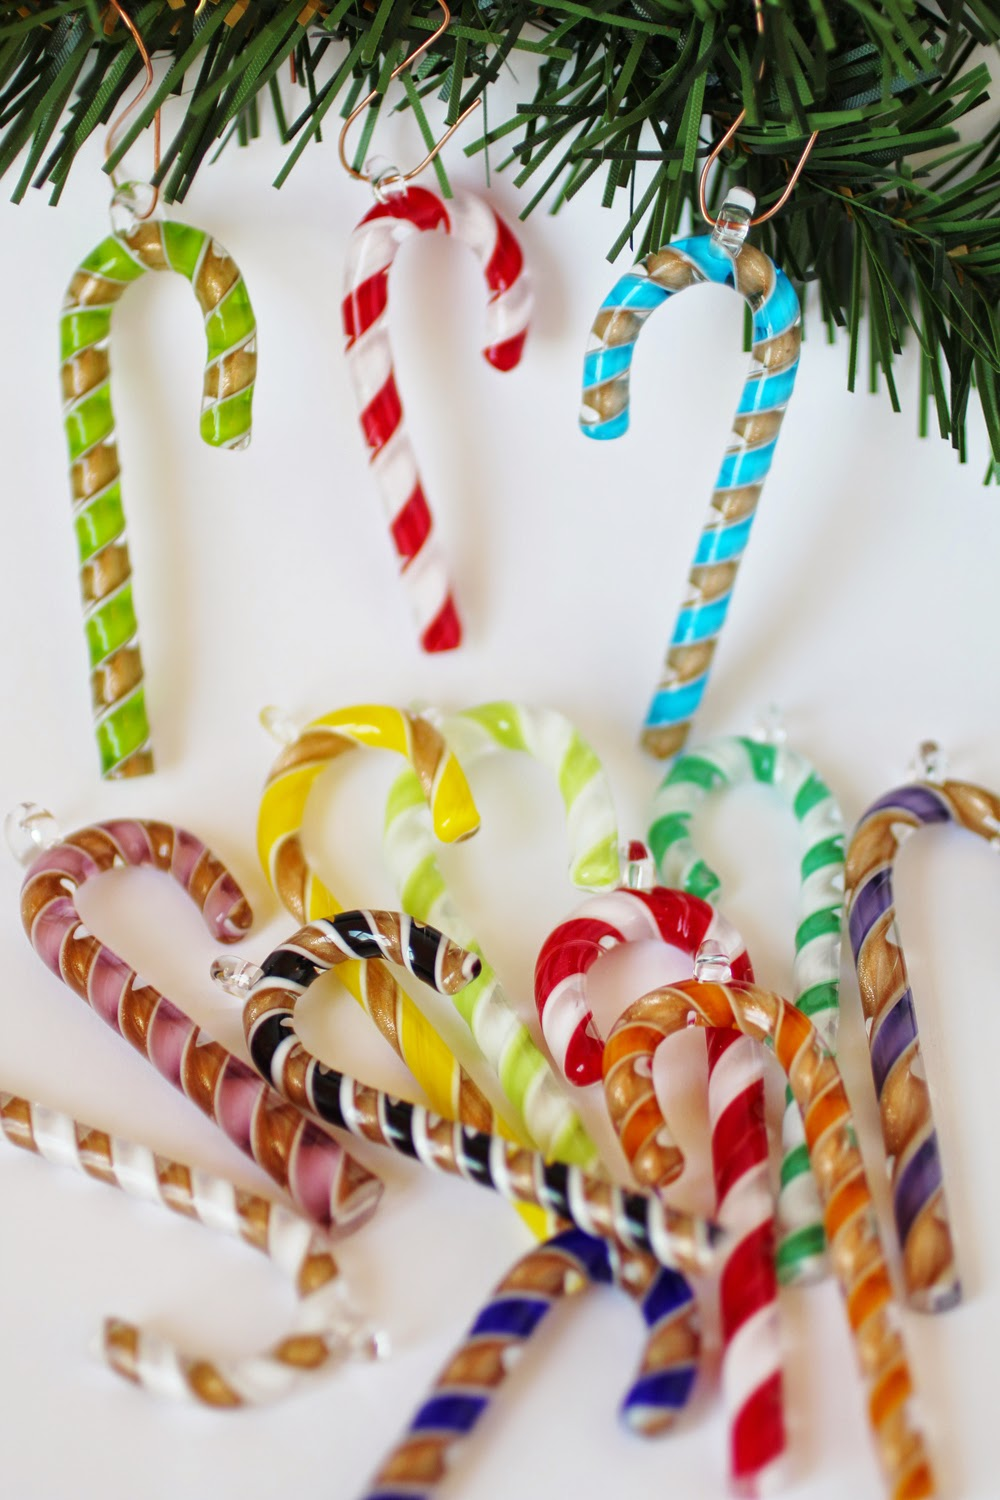 Glass candy cane ornaments - Candy Cane Tree Ornaments